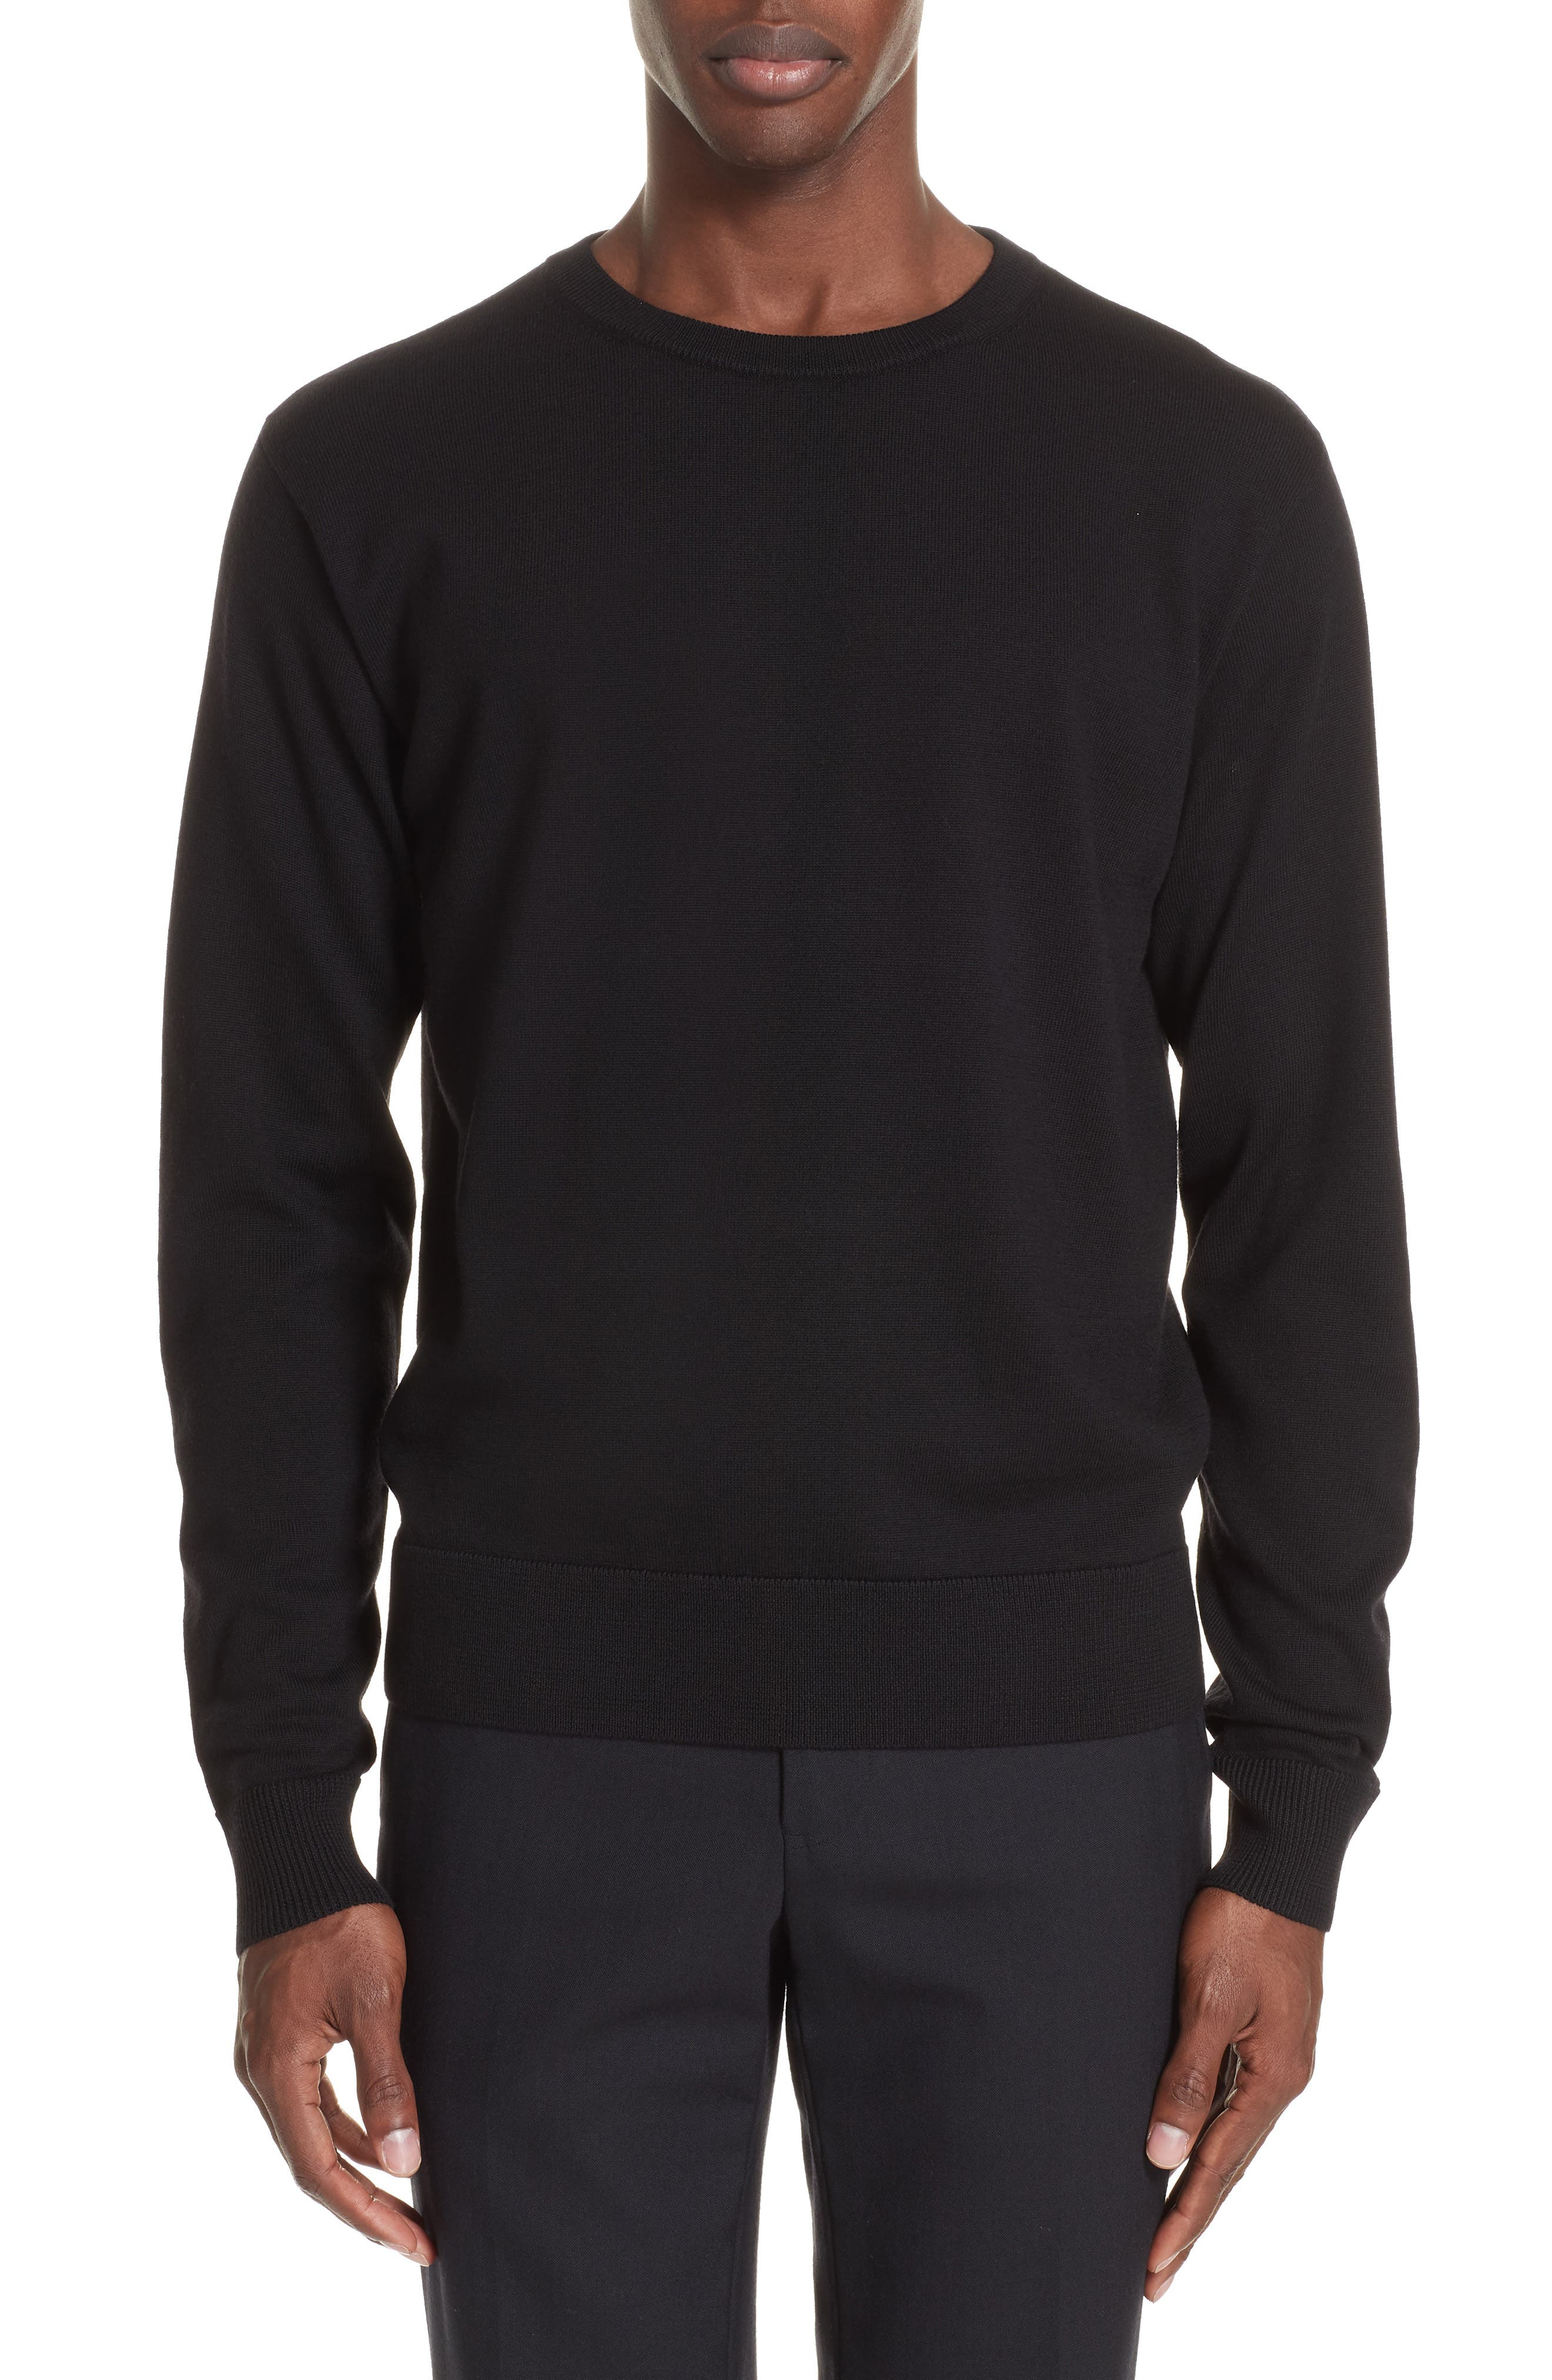 Midday Merino Wool Sweater,                         Main,                         color, 001